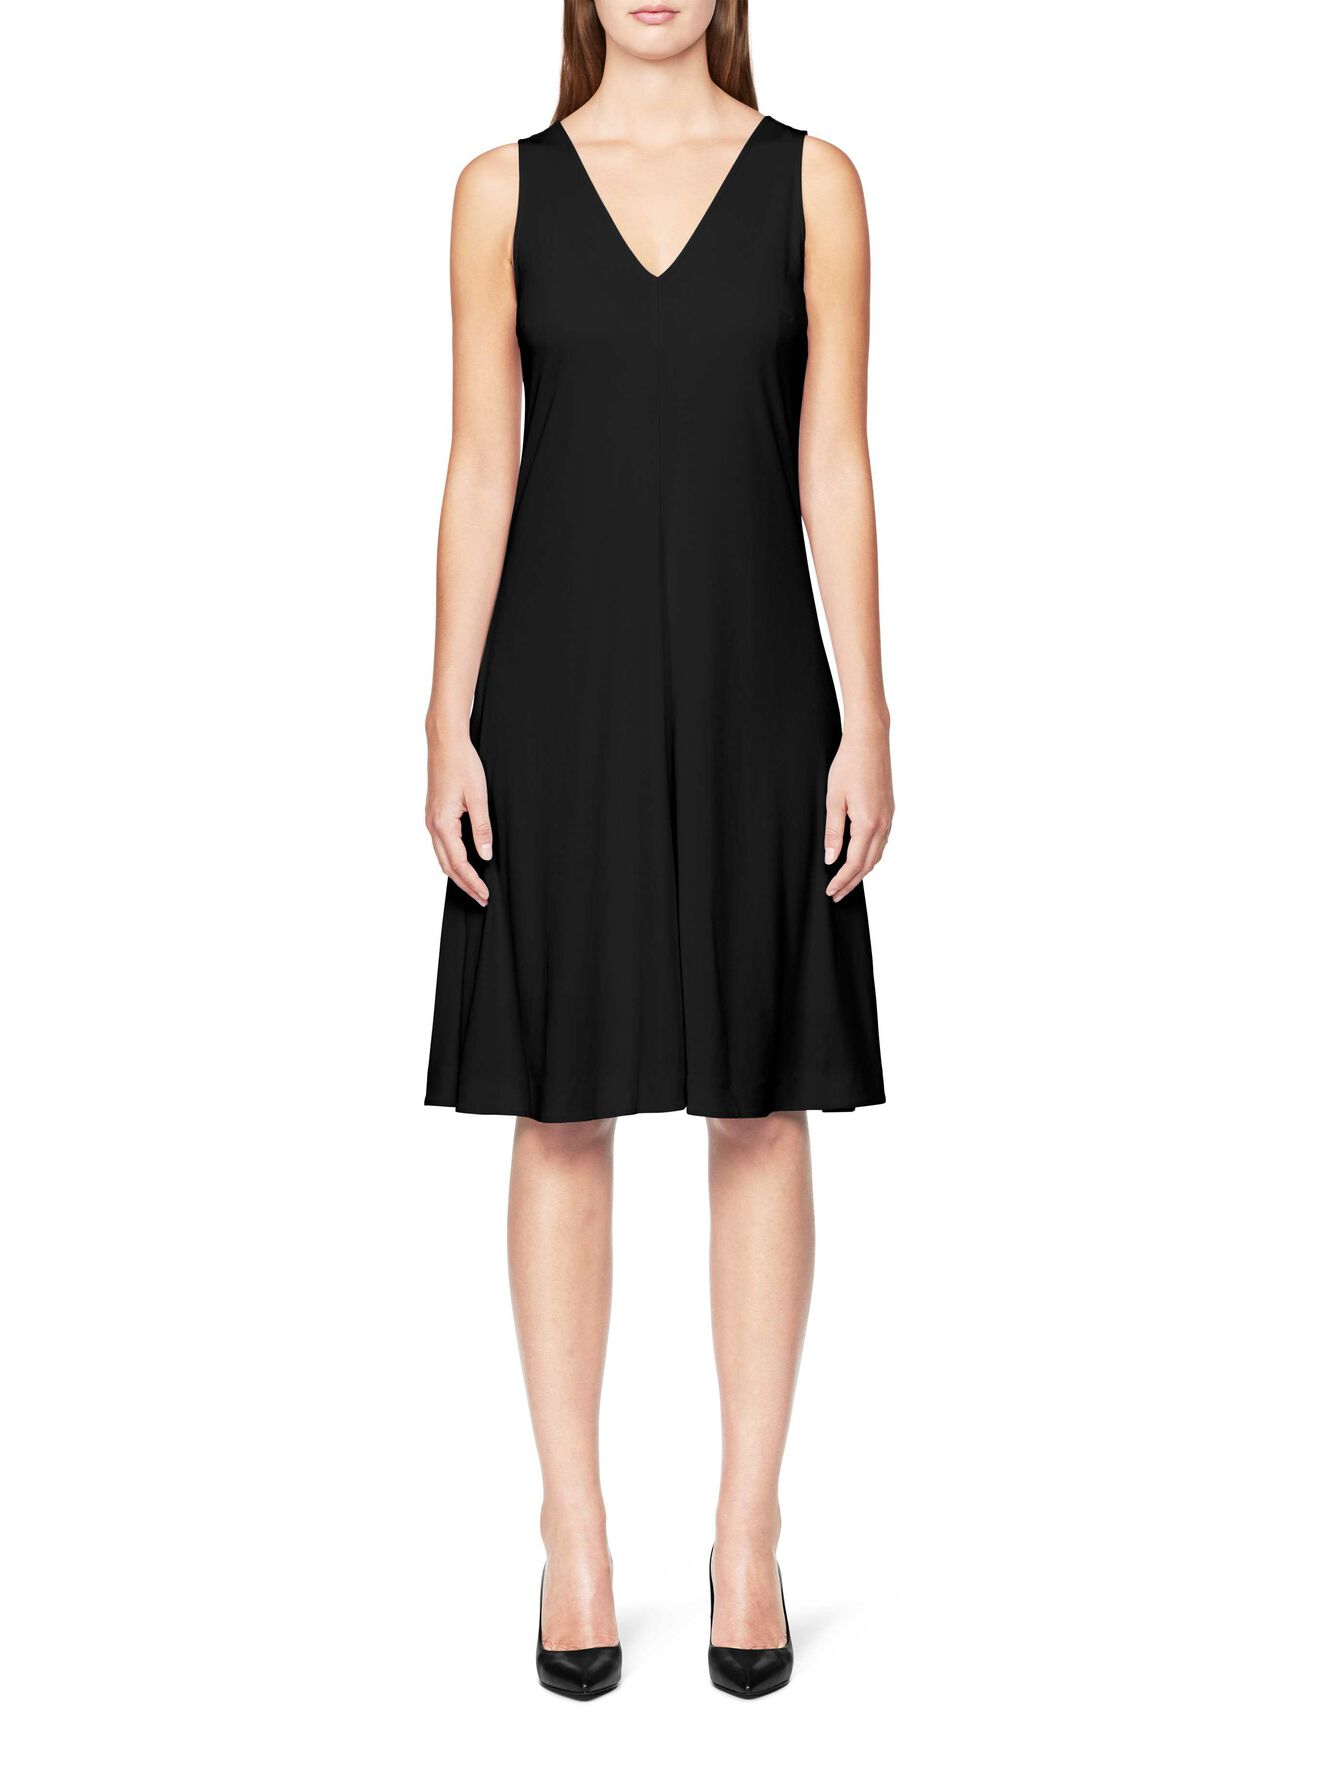 Emerly Dress in Midnight Black from Tiger of Sweden